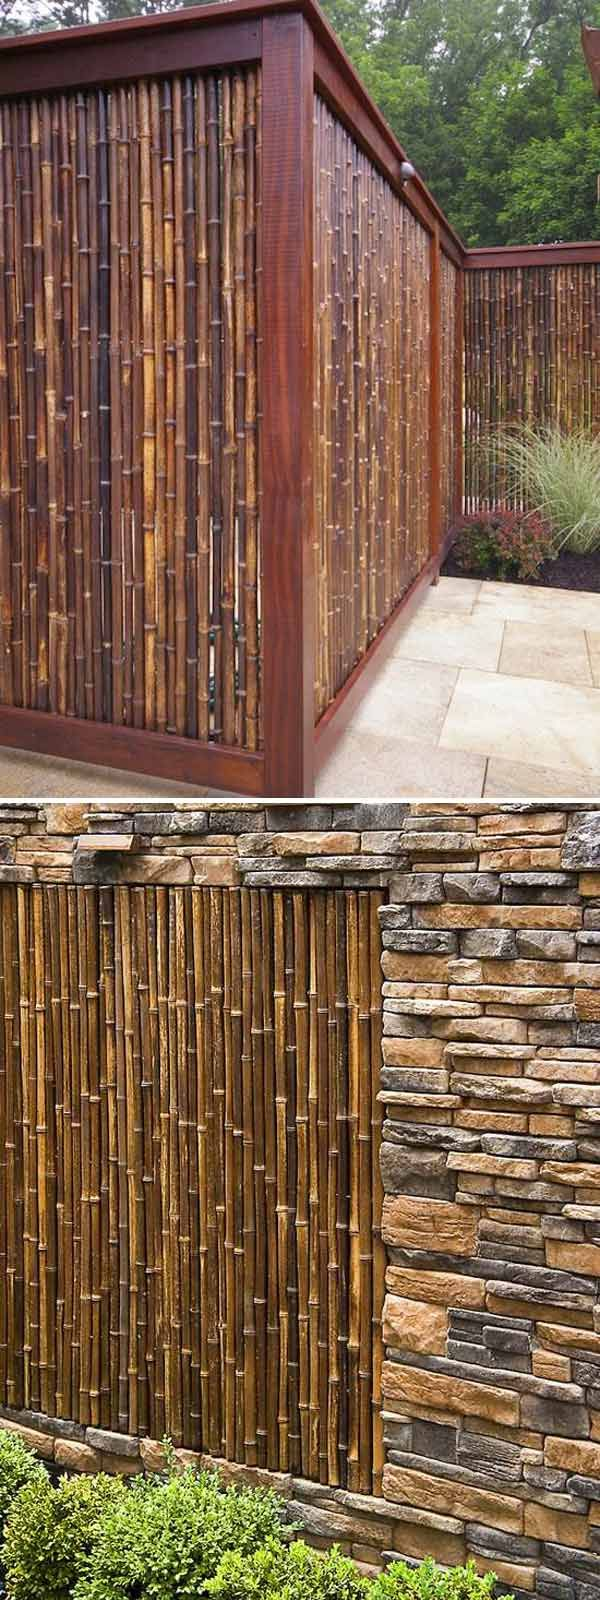 #21. Fencing not only makes you get privacy, it also be an outdoor landscape.